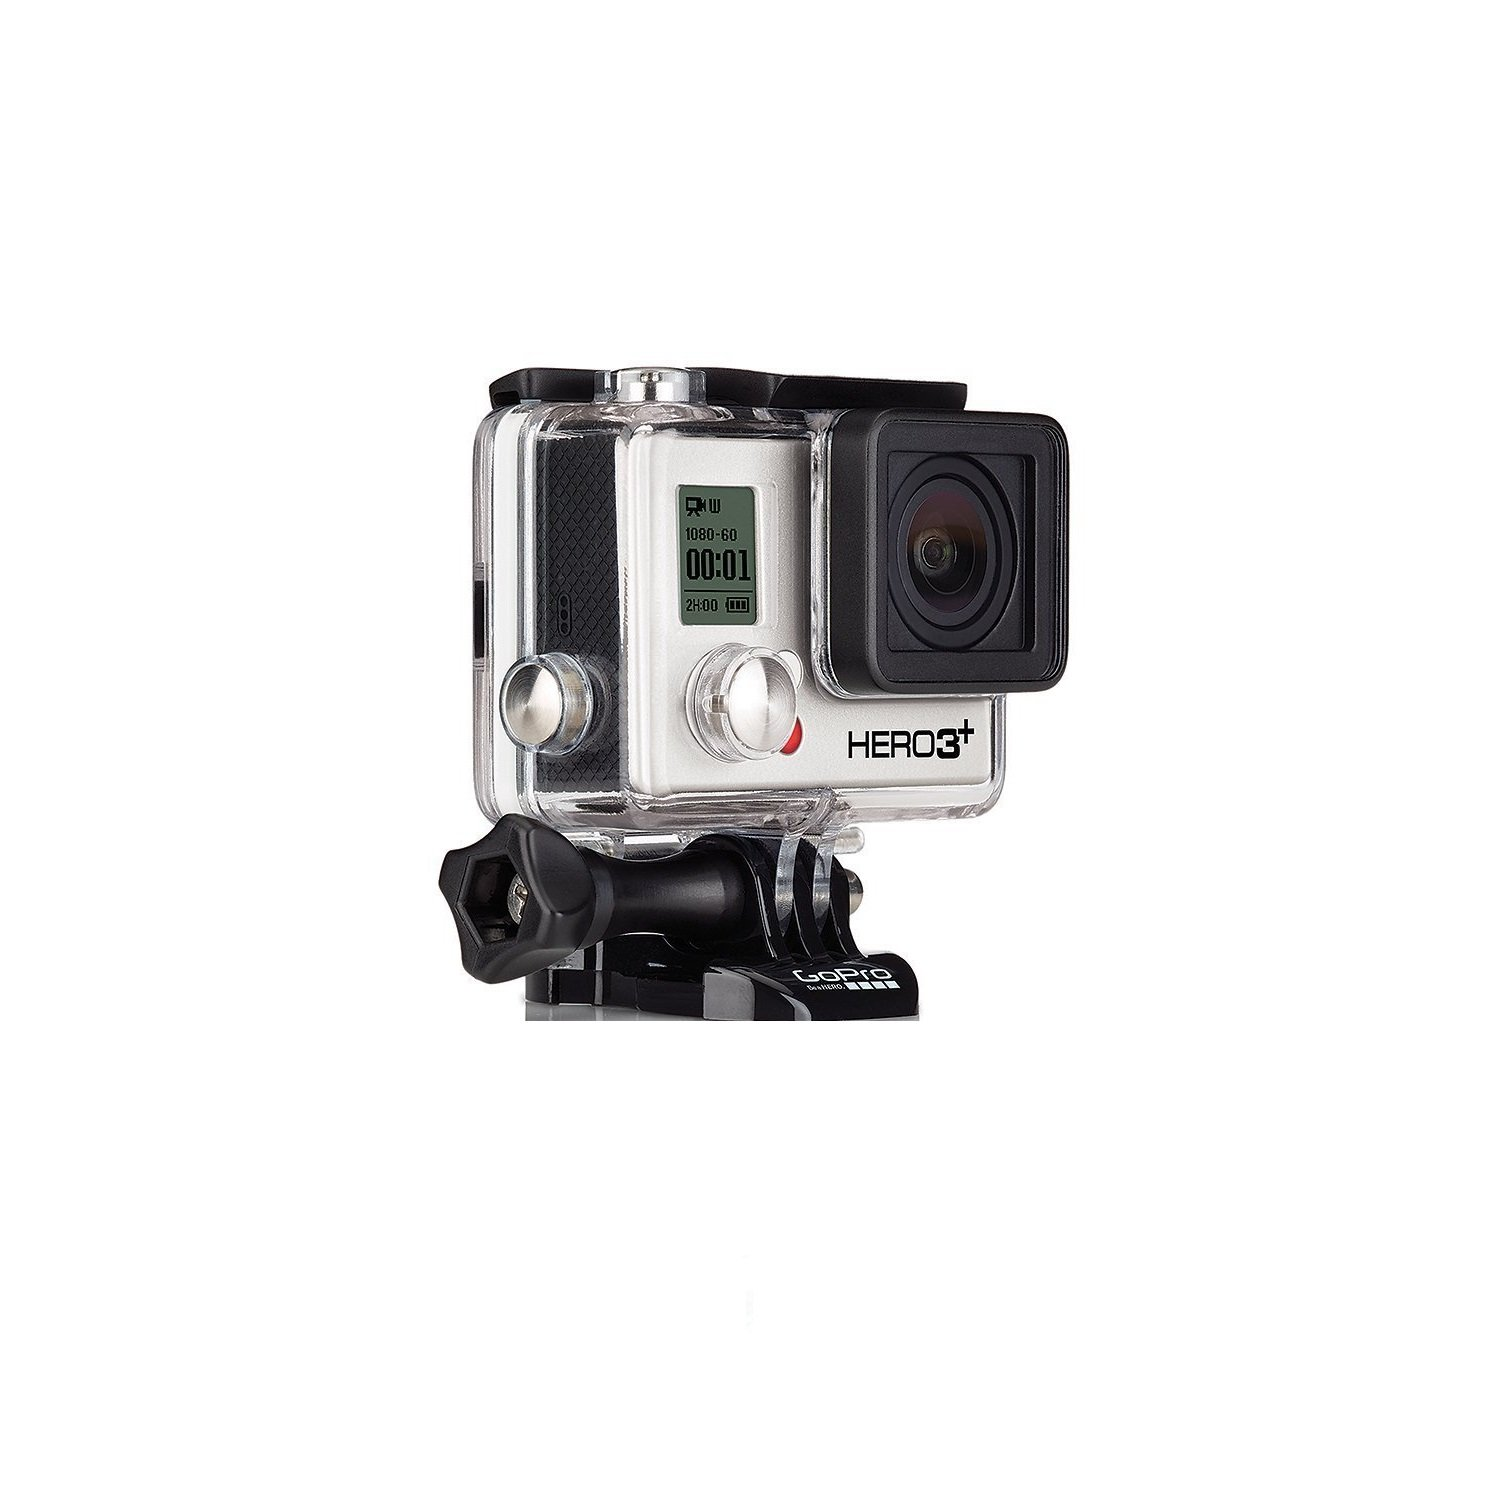 GoPro HERO3+ Black Edition Adventure Camera (Discontinued by Manufacturer)